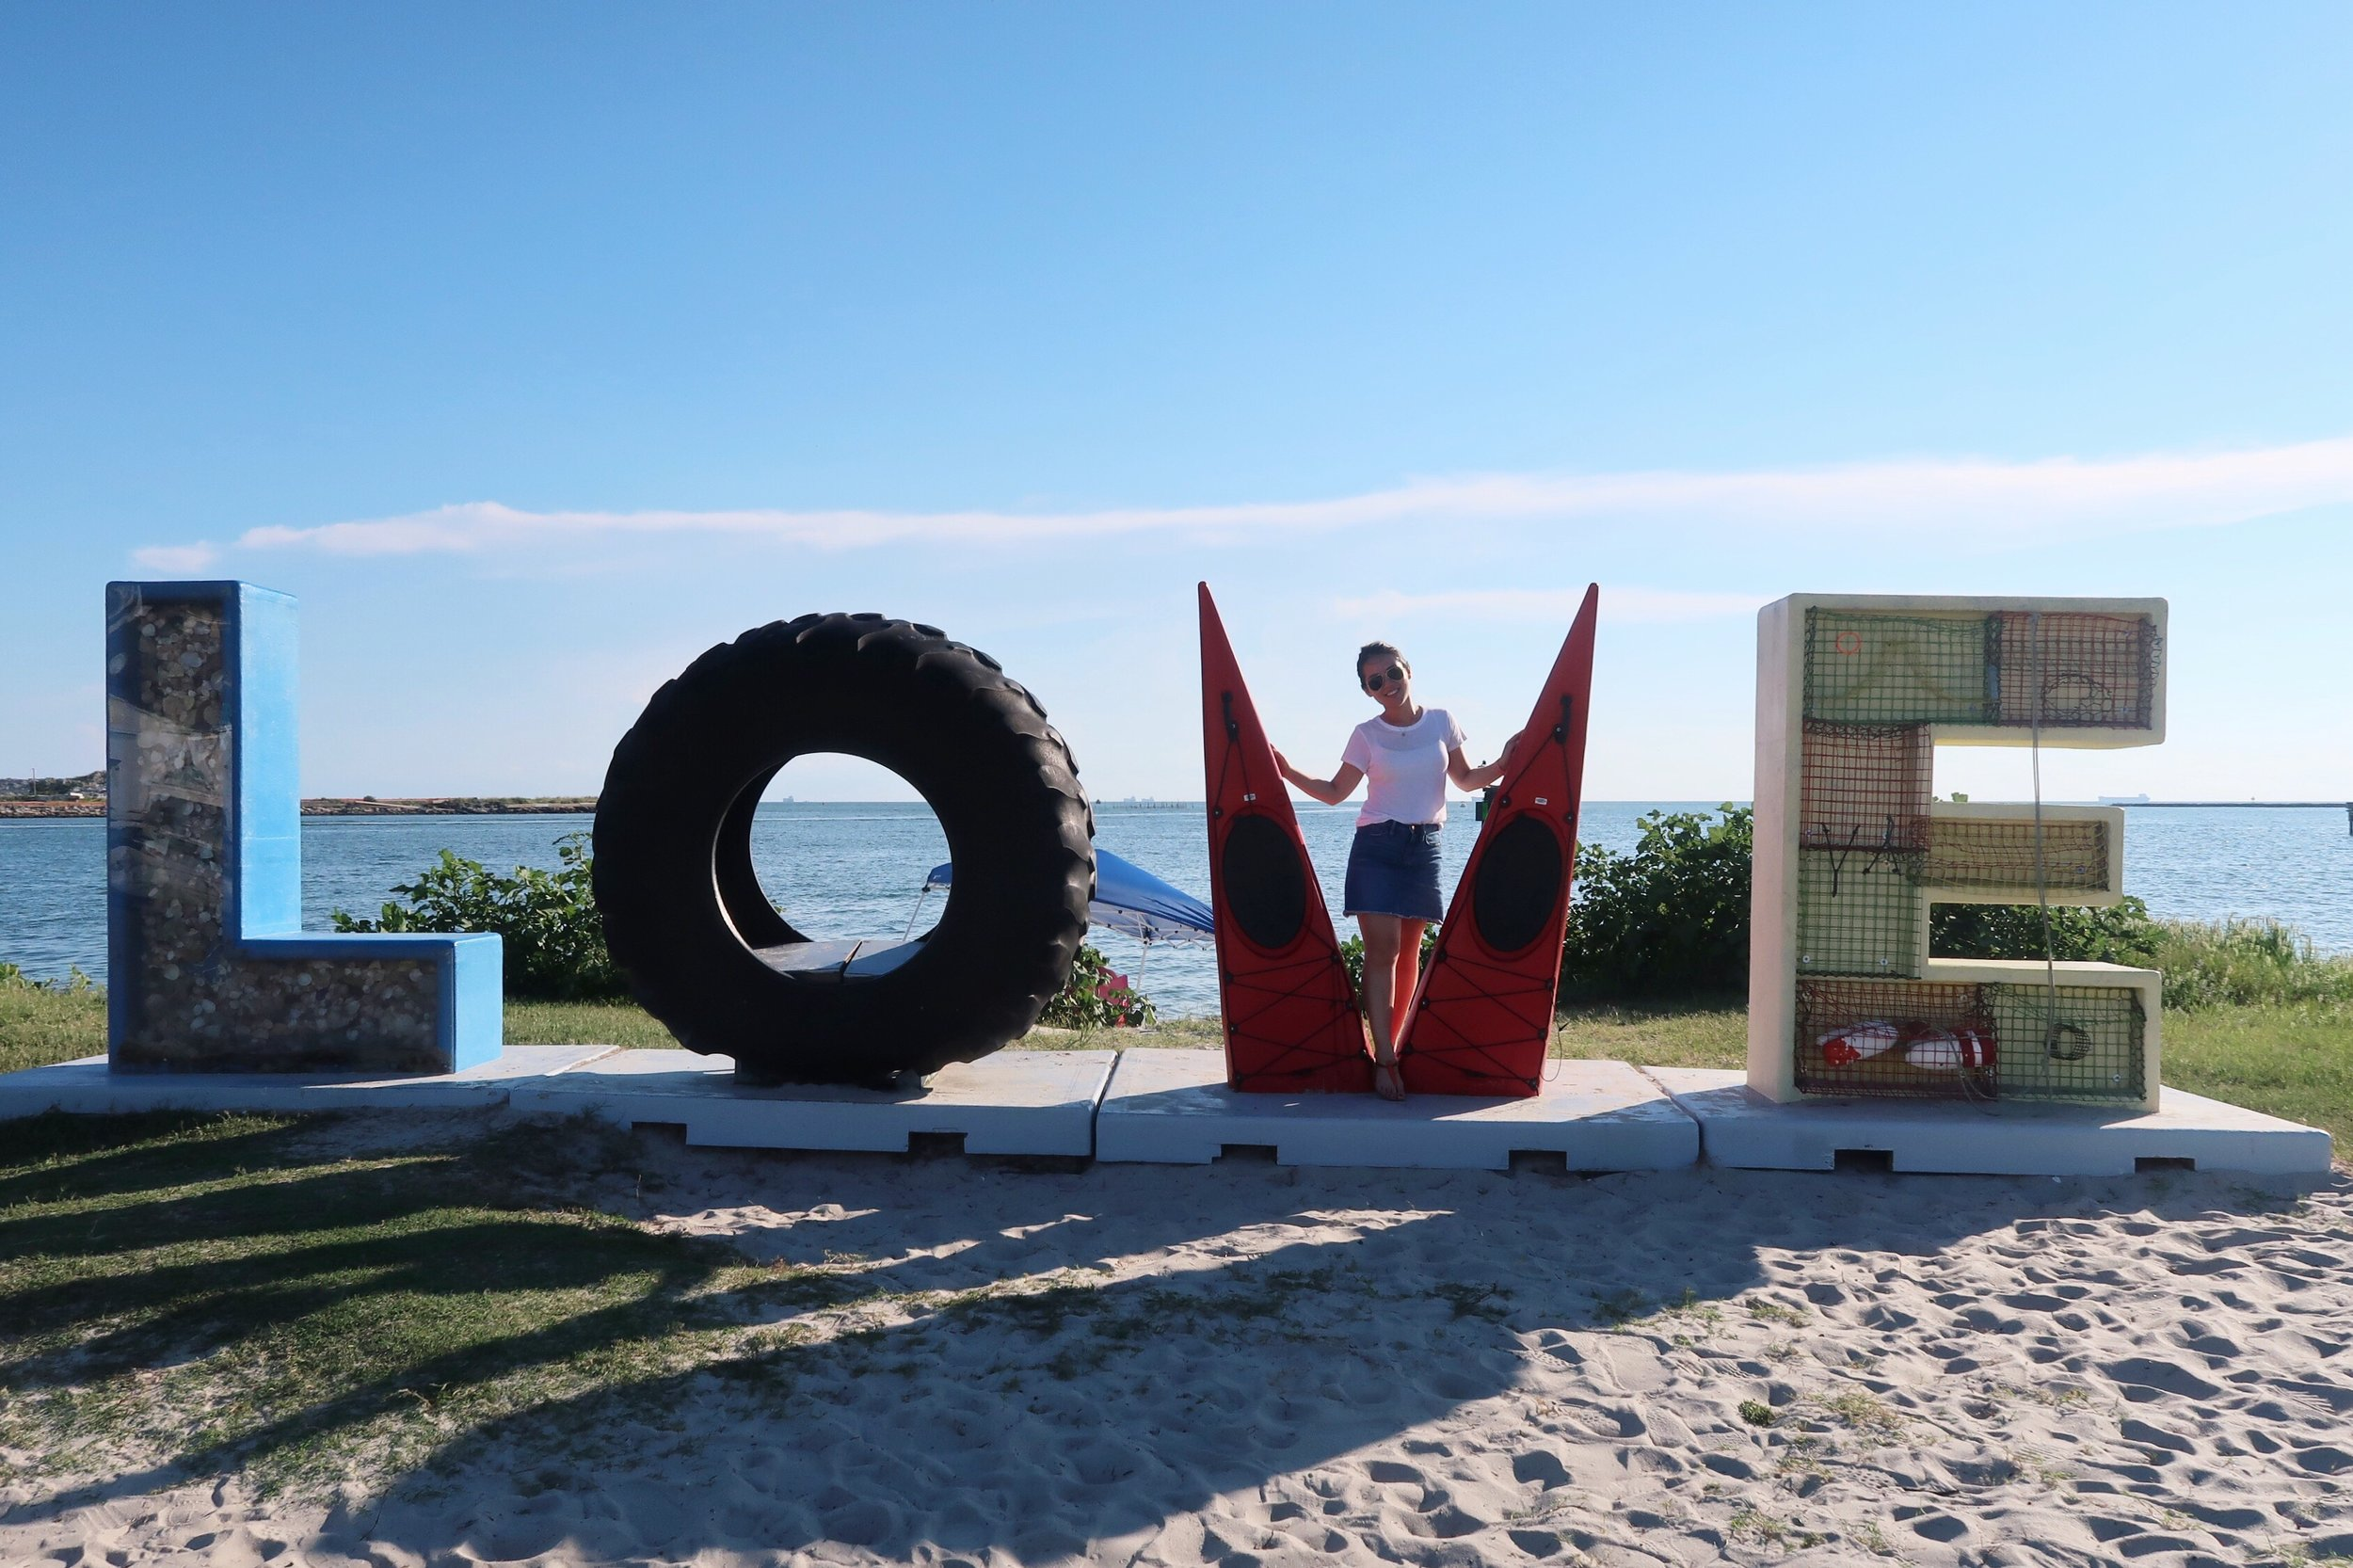 Visited LOVE sign in Cape Charles, VA on the way home. | 回家路途中順便去了一趟Cape Charles, VA。